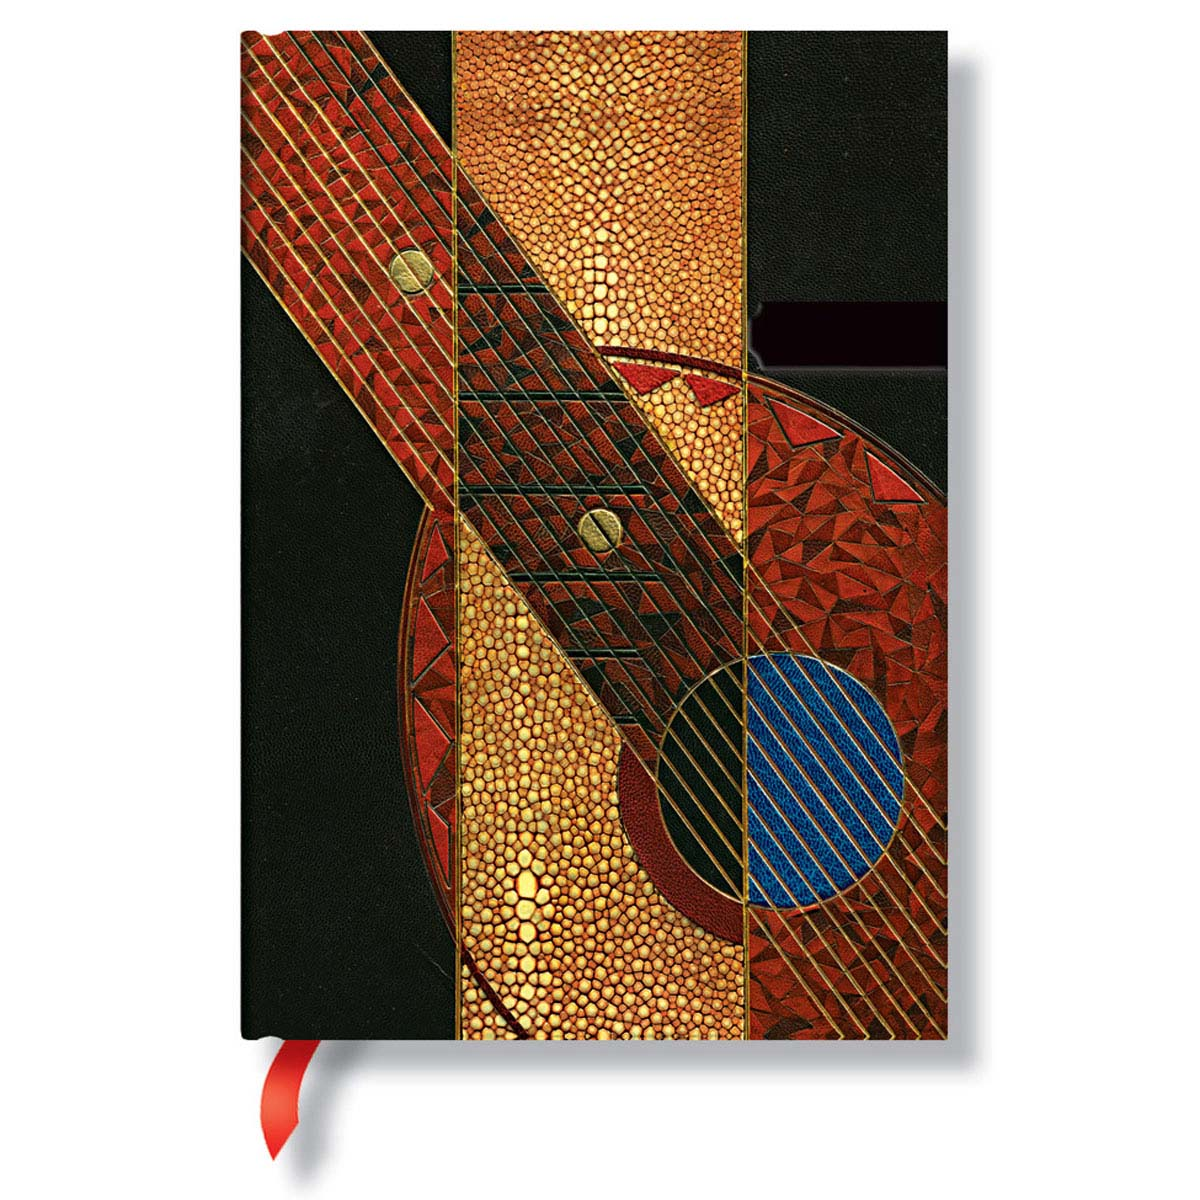 "Paperblanks Art Deco Serenade 5"" x 7\"" Midi Journal"